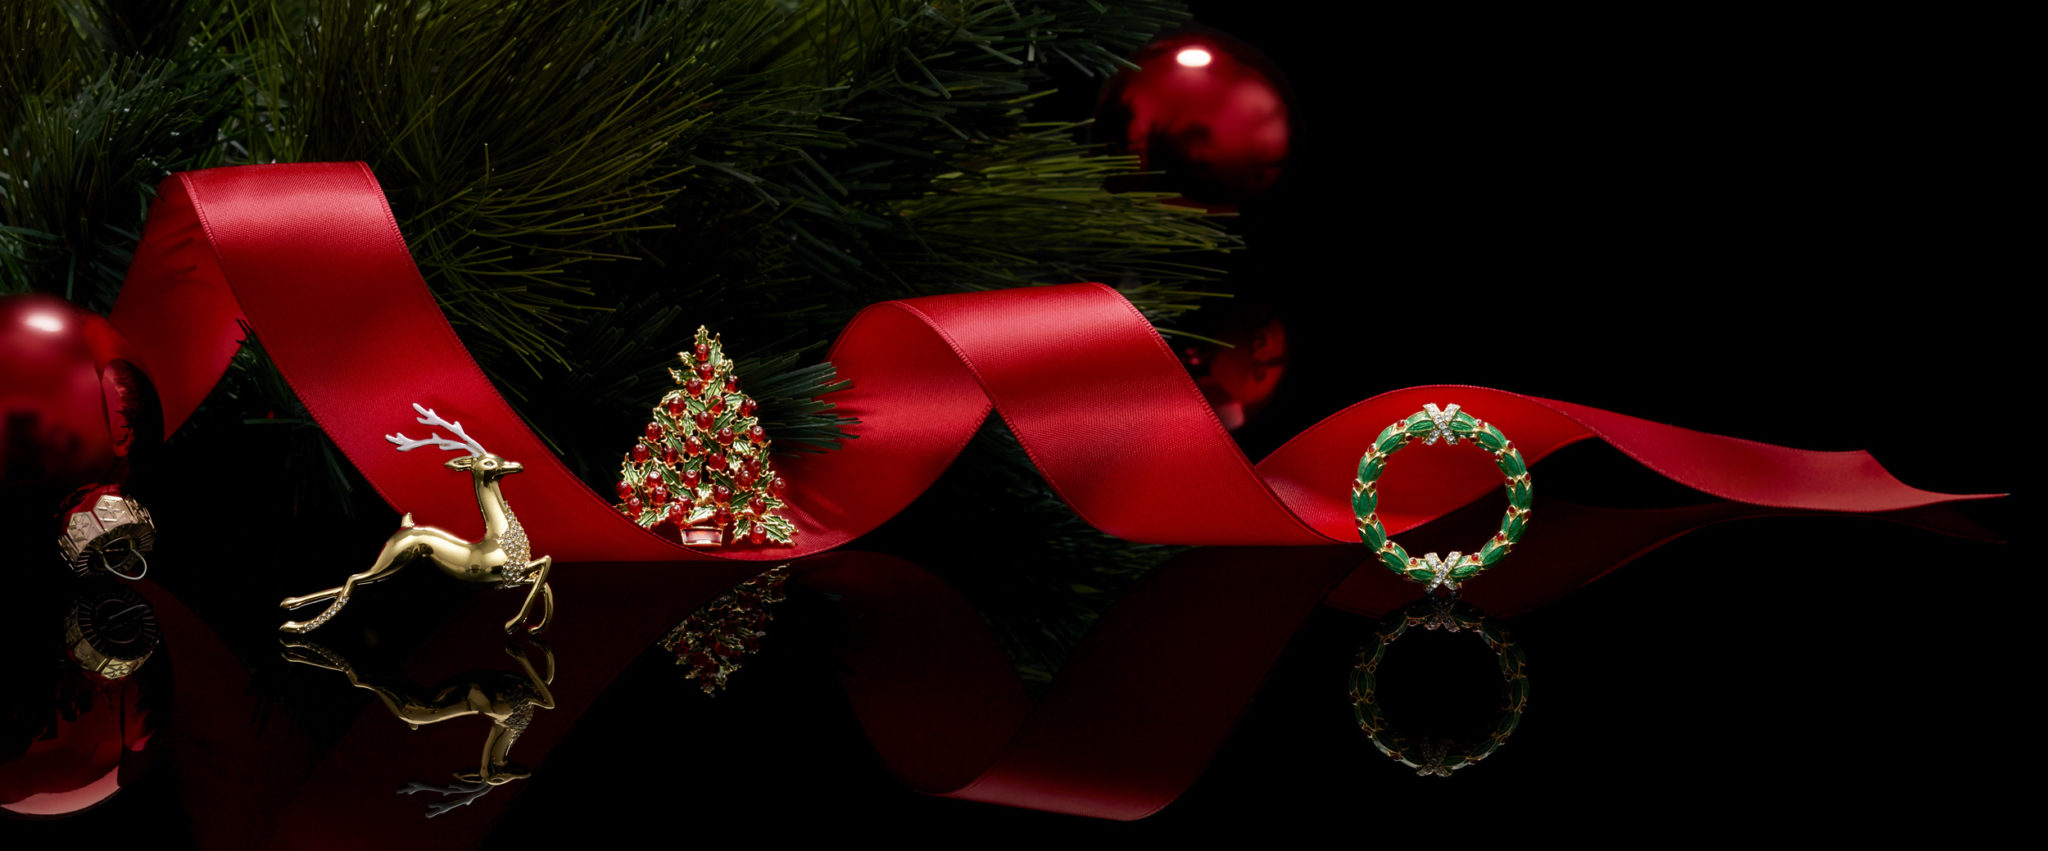 Holiday pins e-commerce header with a red ribbon, tree branch, reflection, and black background